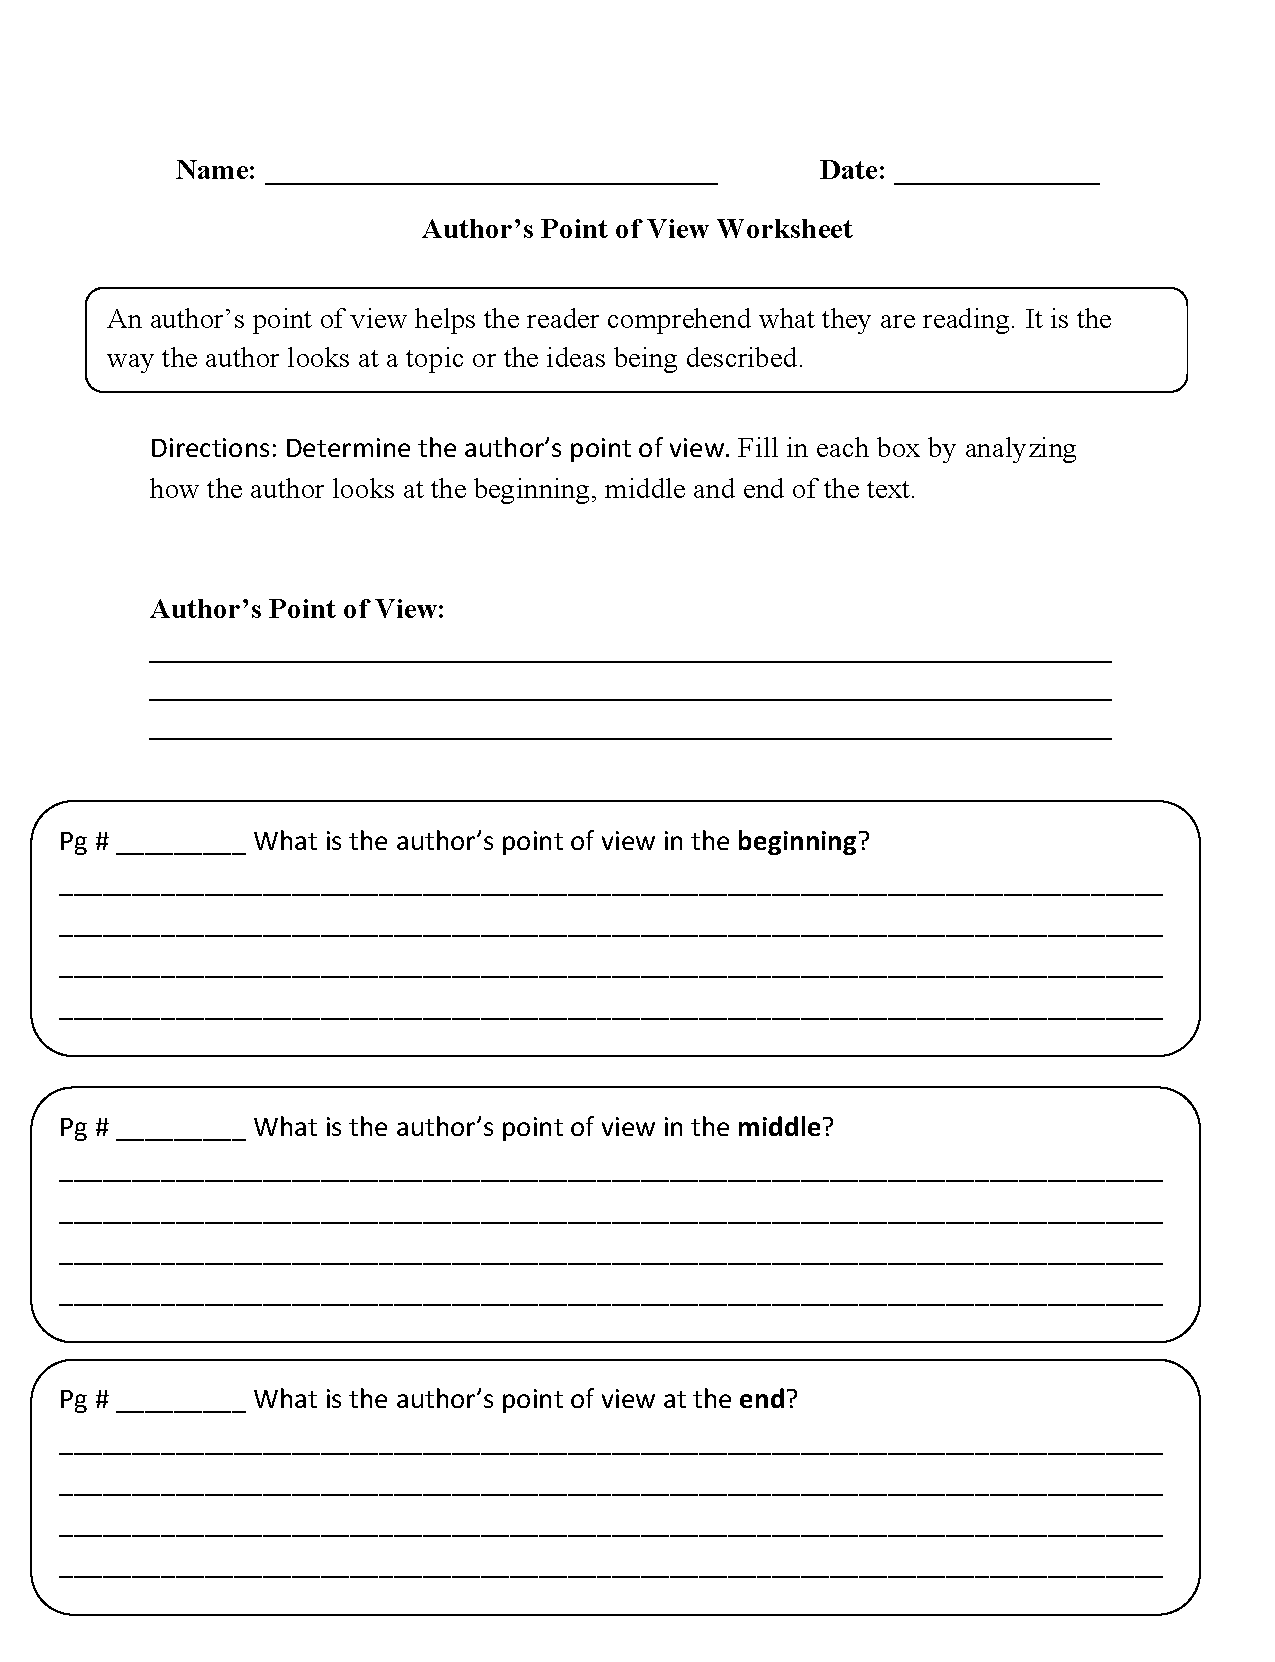 Weirdmailus  Unusual Englishlinxcom  Point Of View Worksheets With Fetching Point Of View Worksheets With Awesome Chemical Reactions Worksheet With Answers Also Ser V Estar Worksheet In Addition Plot Structure Worksheets And Converting Percents To Fractions Worksheets As Well As Types Of Reactions Worksheets Additionally Alliteration Worksheets Th Grade From Englishlinxcom With Weirdmailus  Fetching Englishlinxcom  Point Of View Worksheets With Awesome Point Of View Worksheets And Unusual Chemical Reactions Worksheet With Answers Also Ser V Estar Worksheet In Addition Plot Structure Worksheets From Englishlinxcom